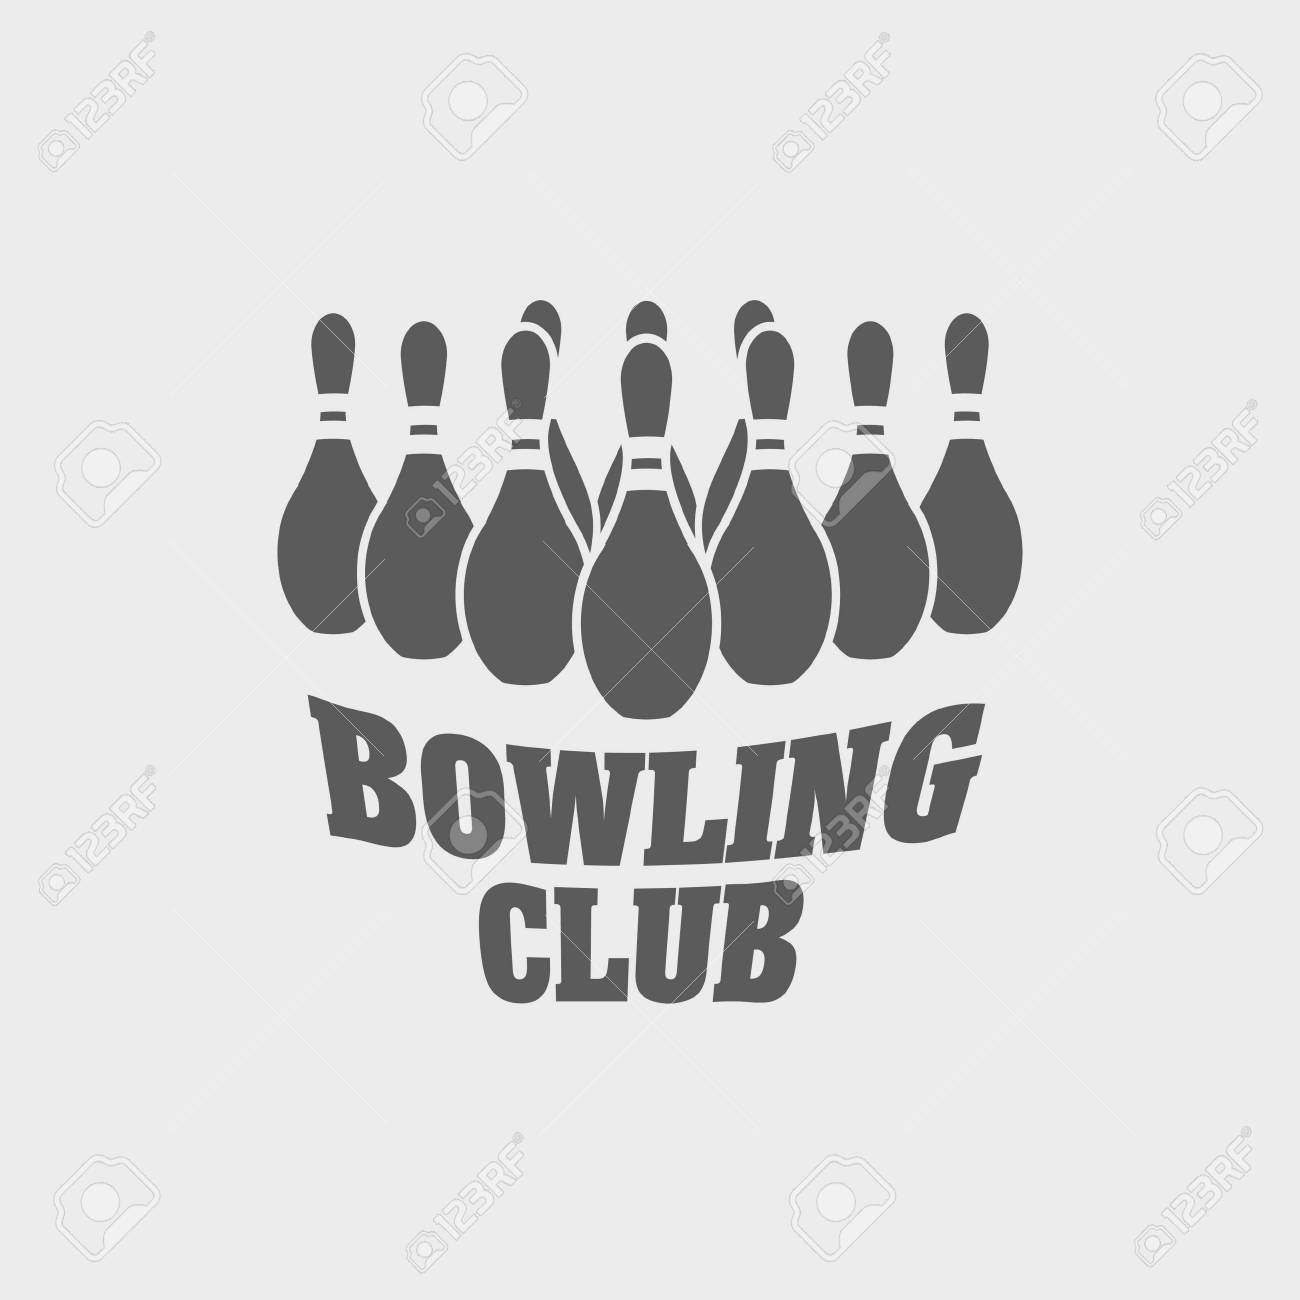 bowling club logo label or symbol design template with bowling